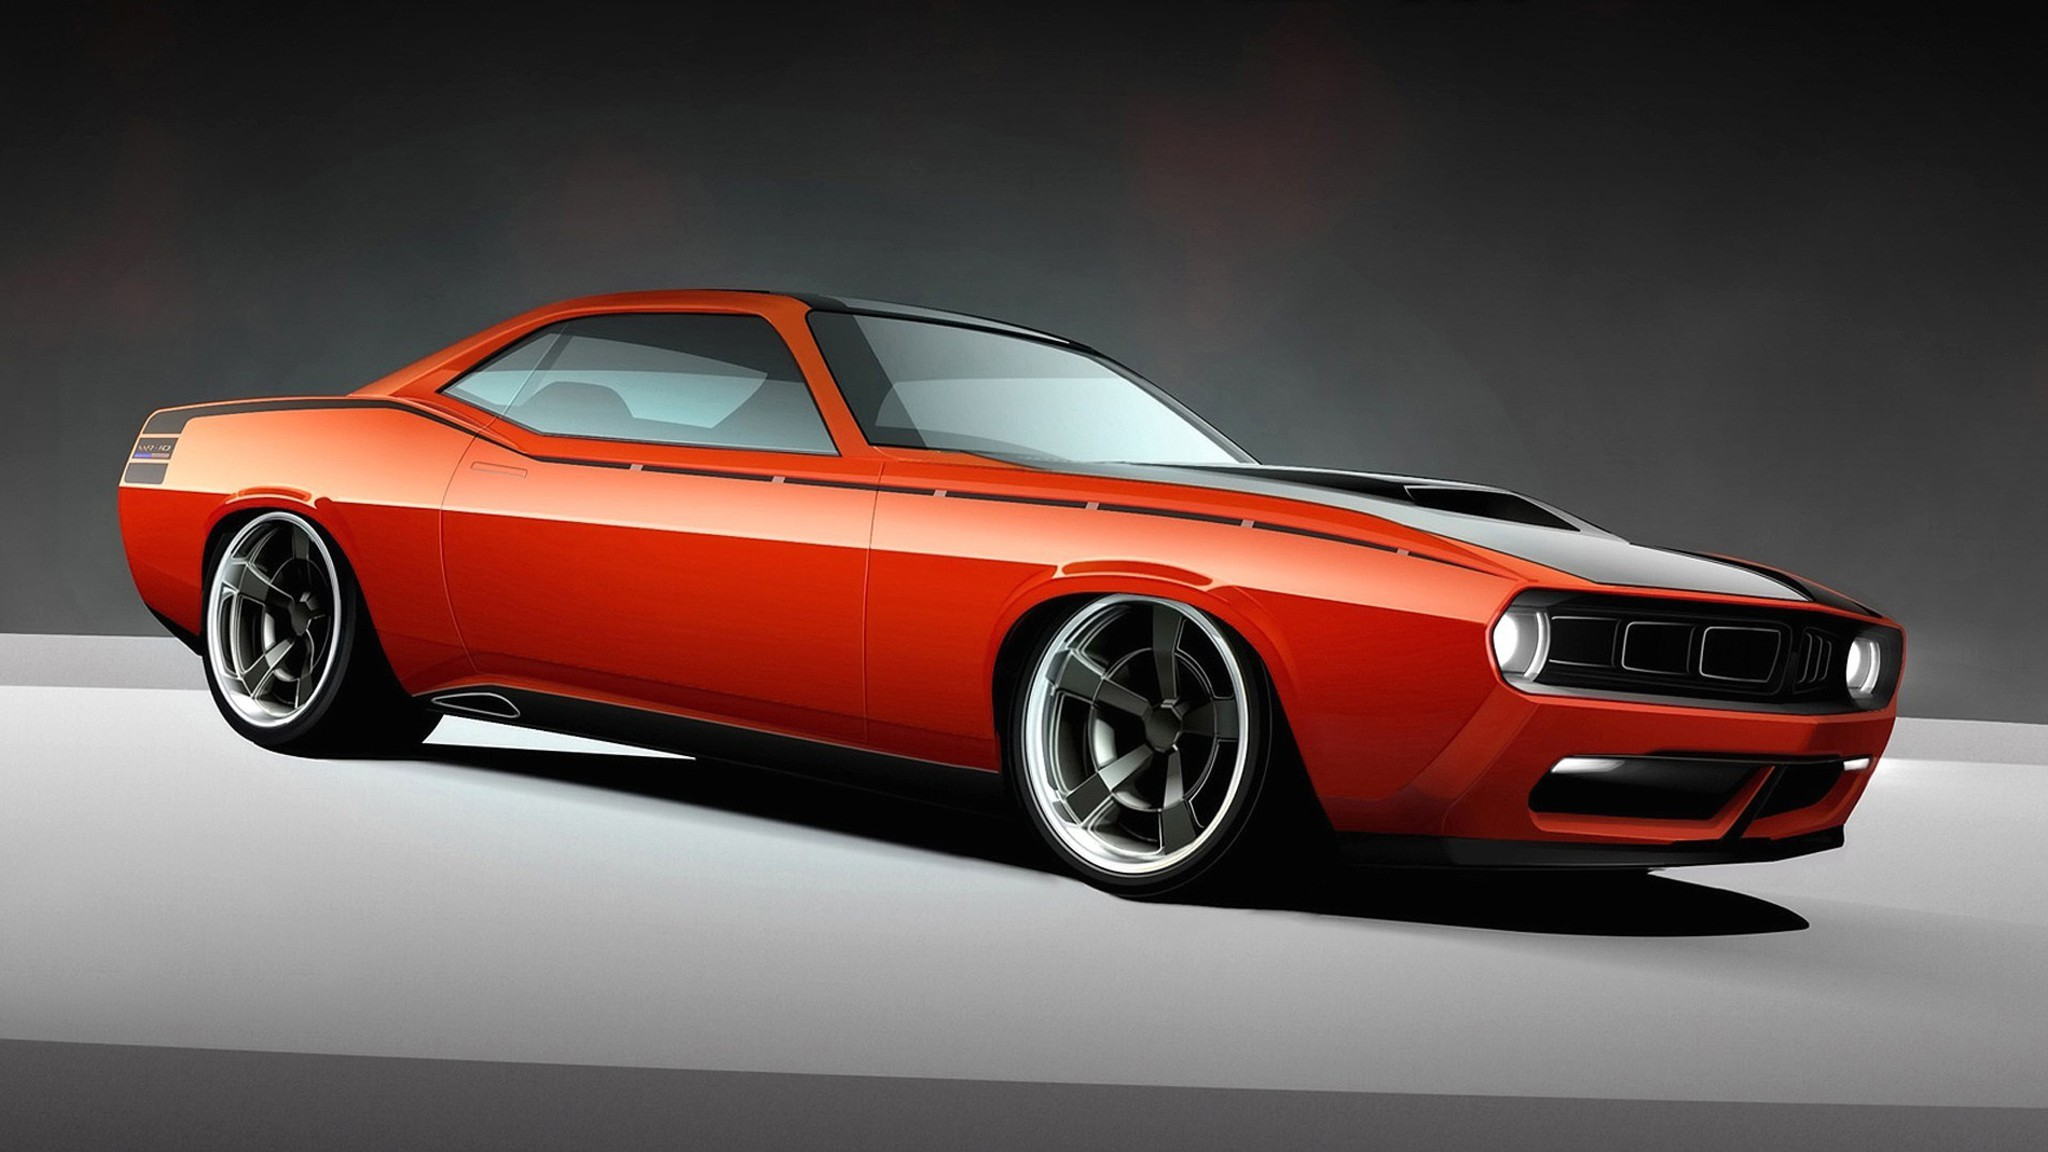 Vintage Car Hd Wallpapers For Pc Usa Plymouth Barracuda Classic 2010 Widescreen Cuda